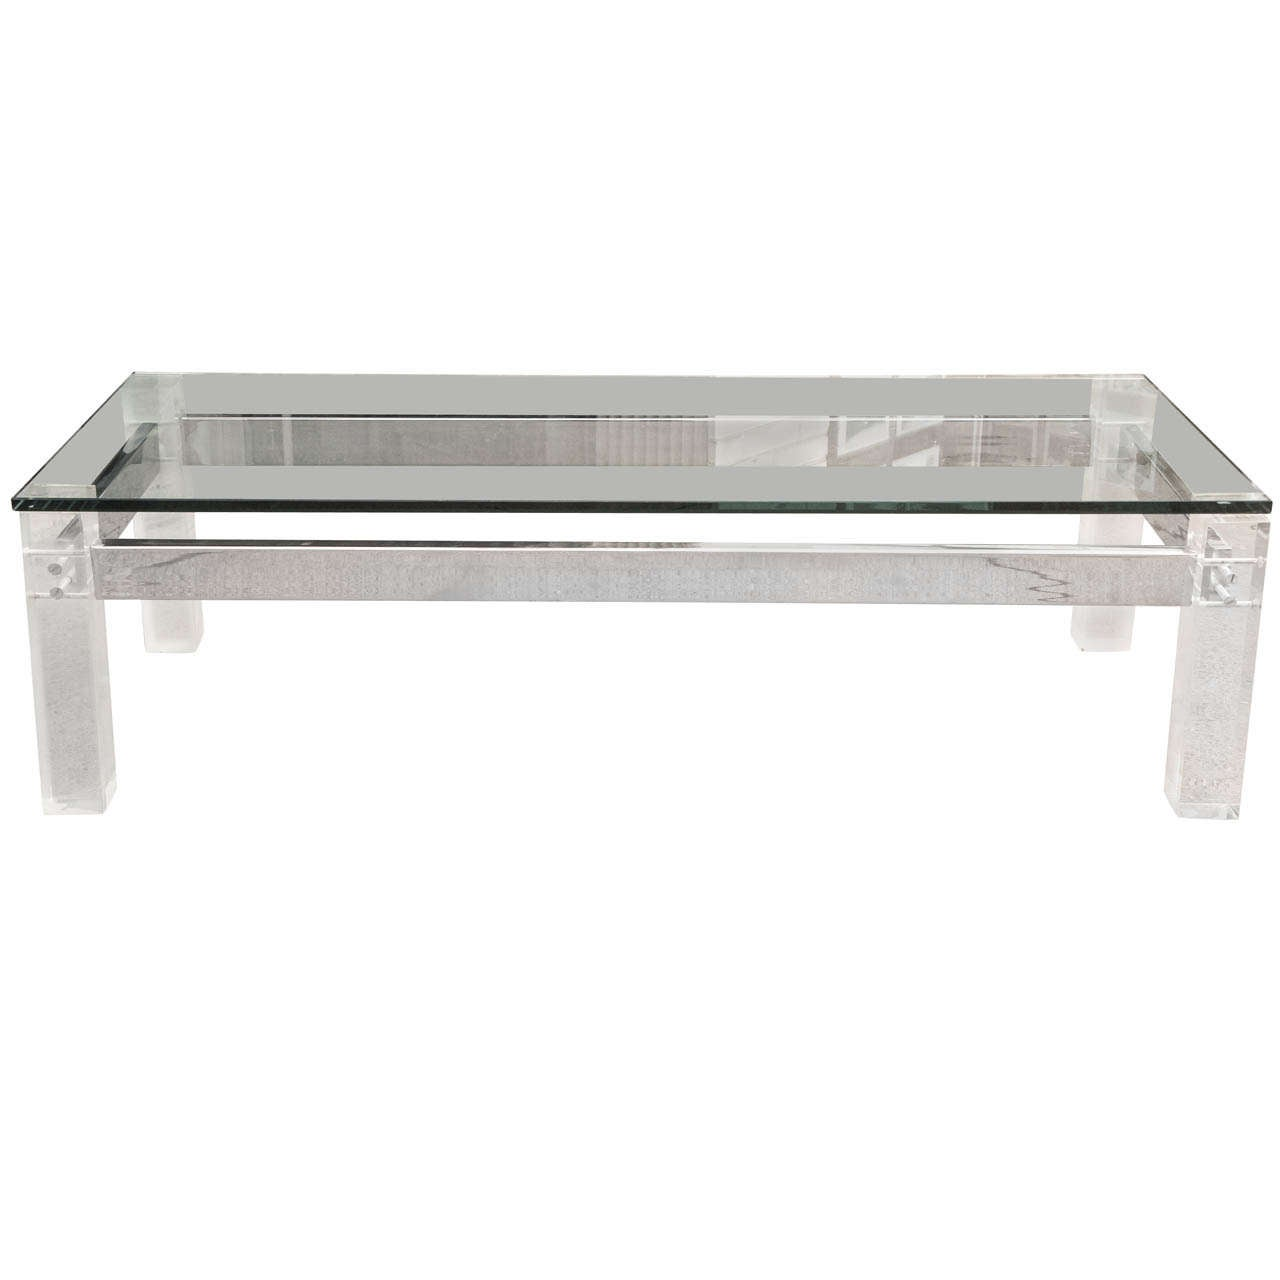 A Vintage 70s Lucite and Chrome Glass Topped Coffee Table For